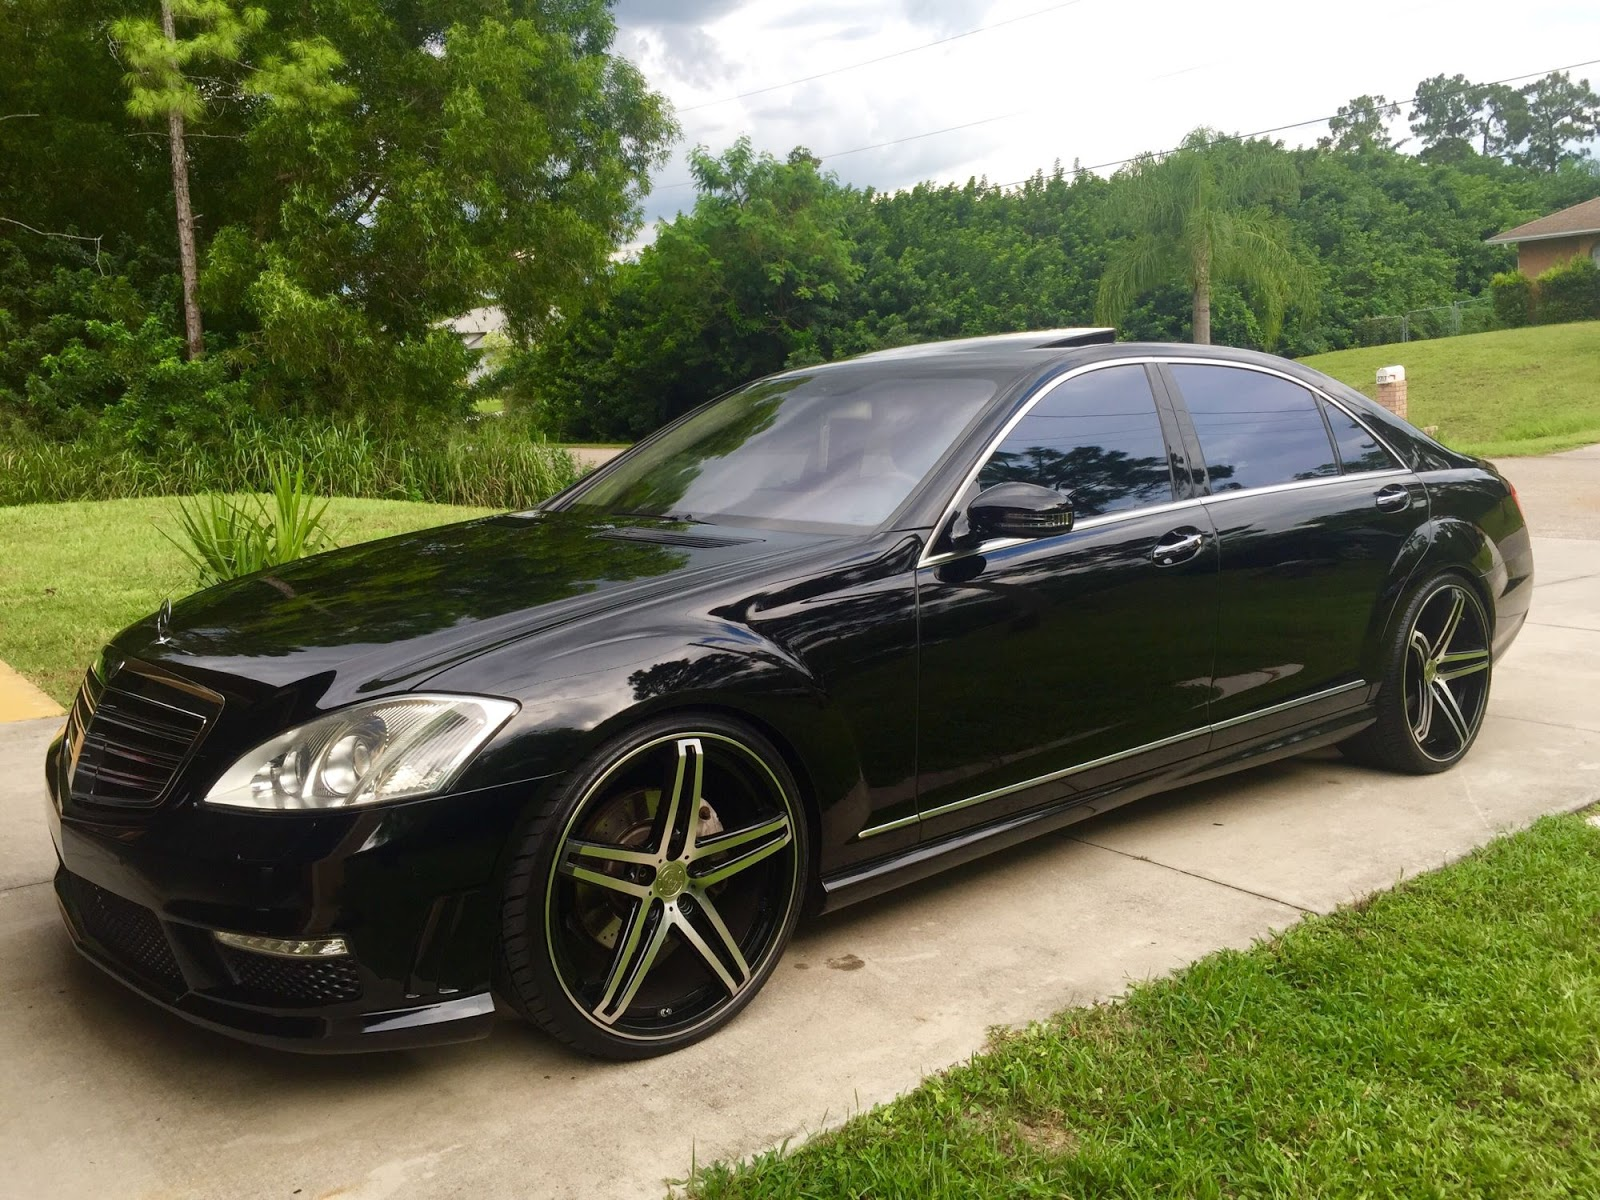 2007 mercedes benz s550 w221 custom benztuning for Mercedes benz s550 pictures